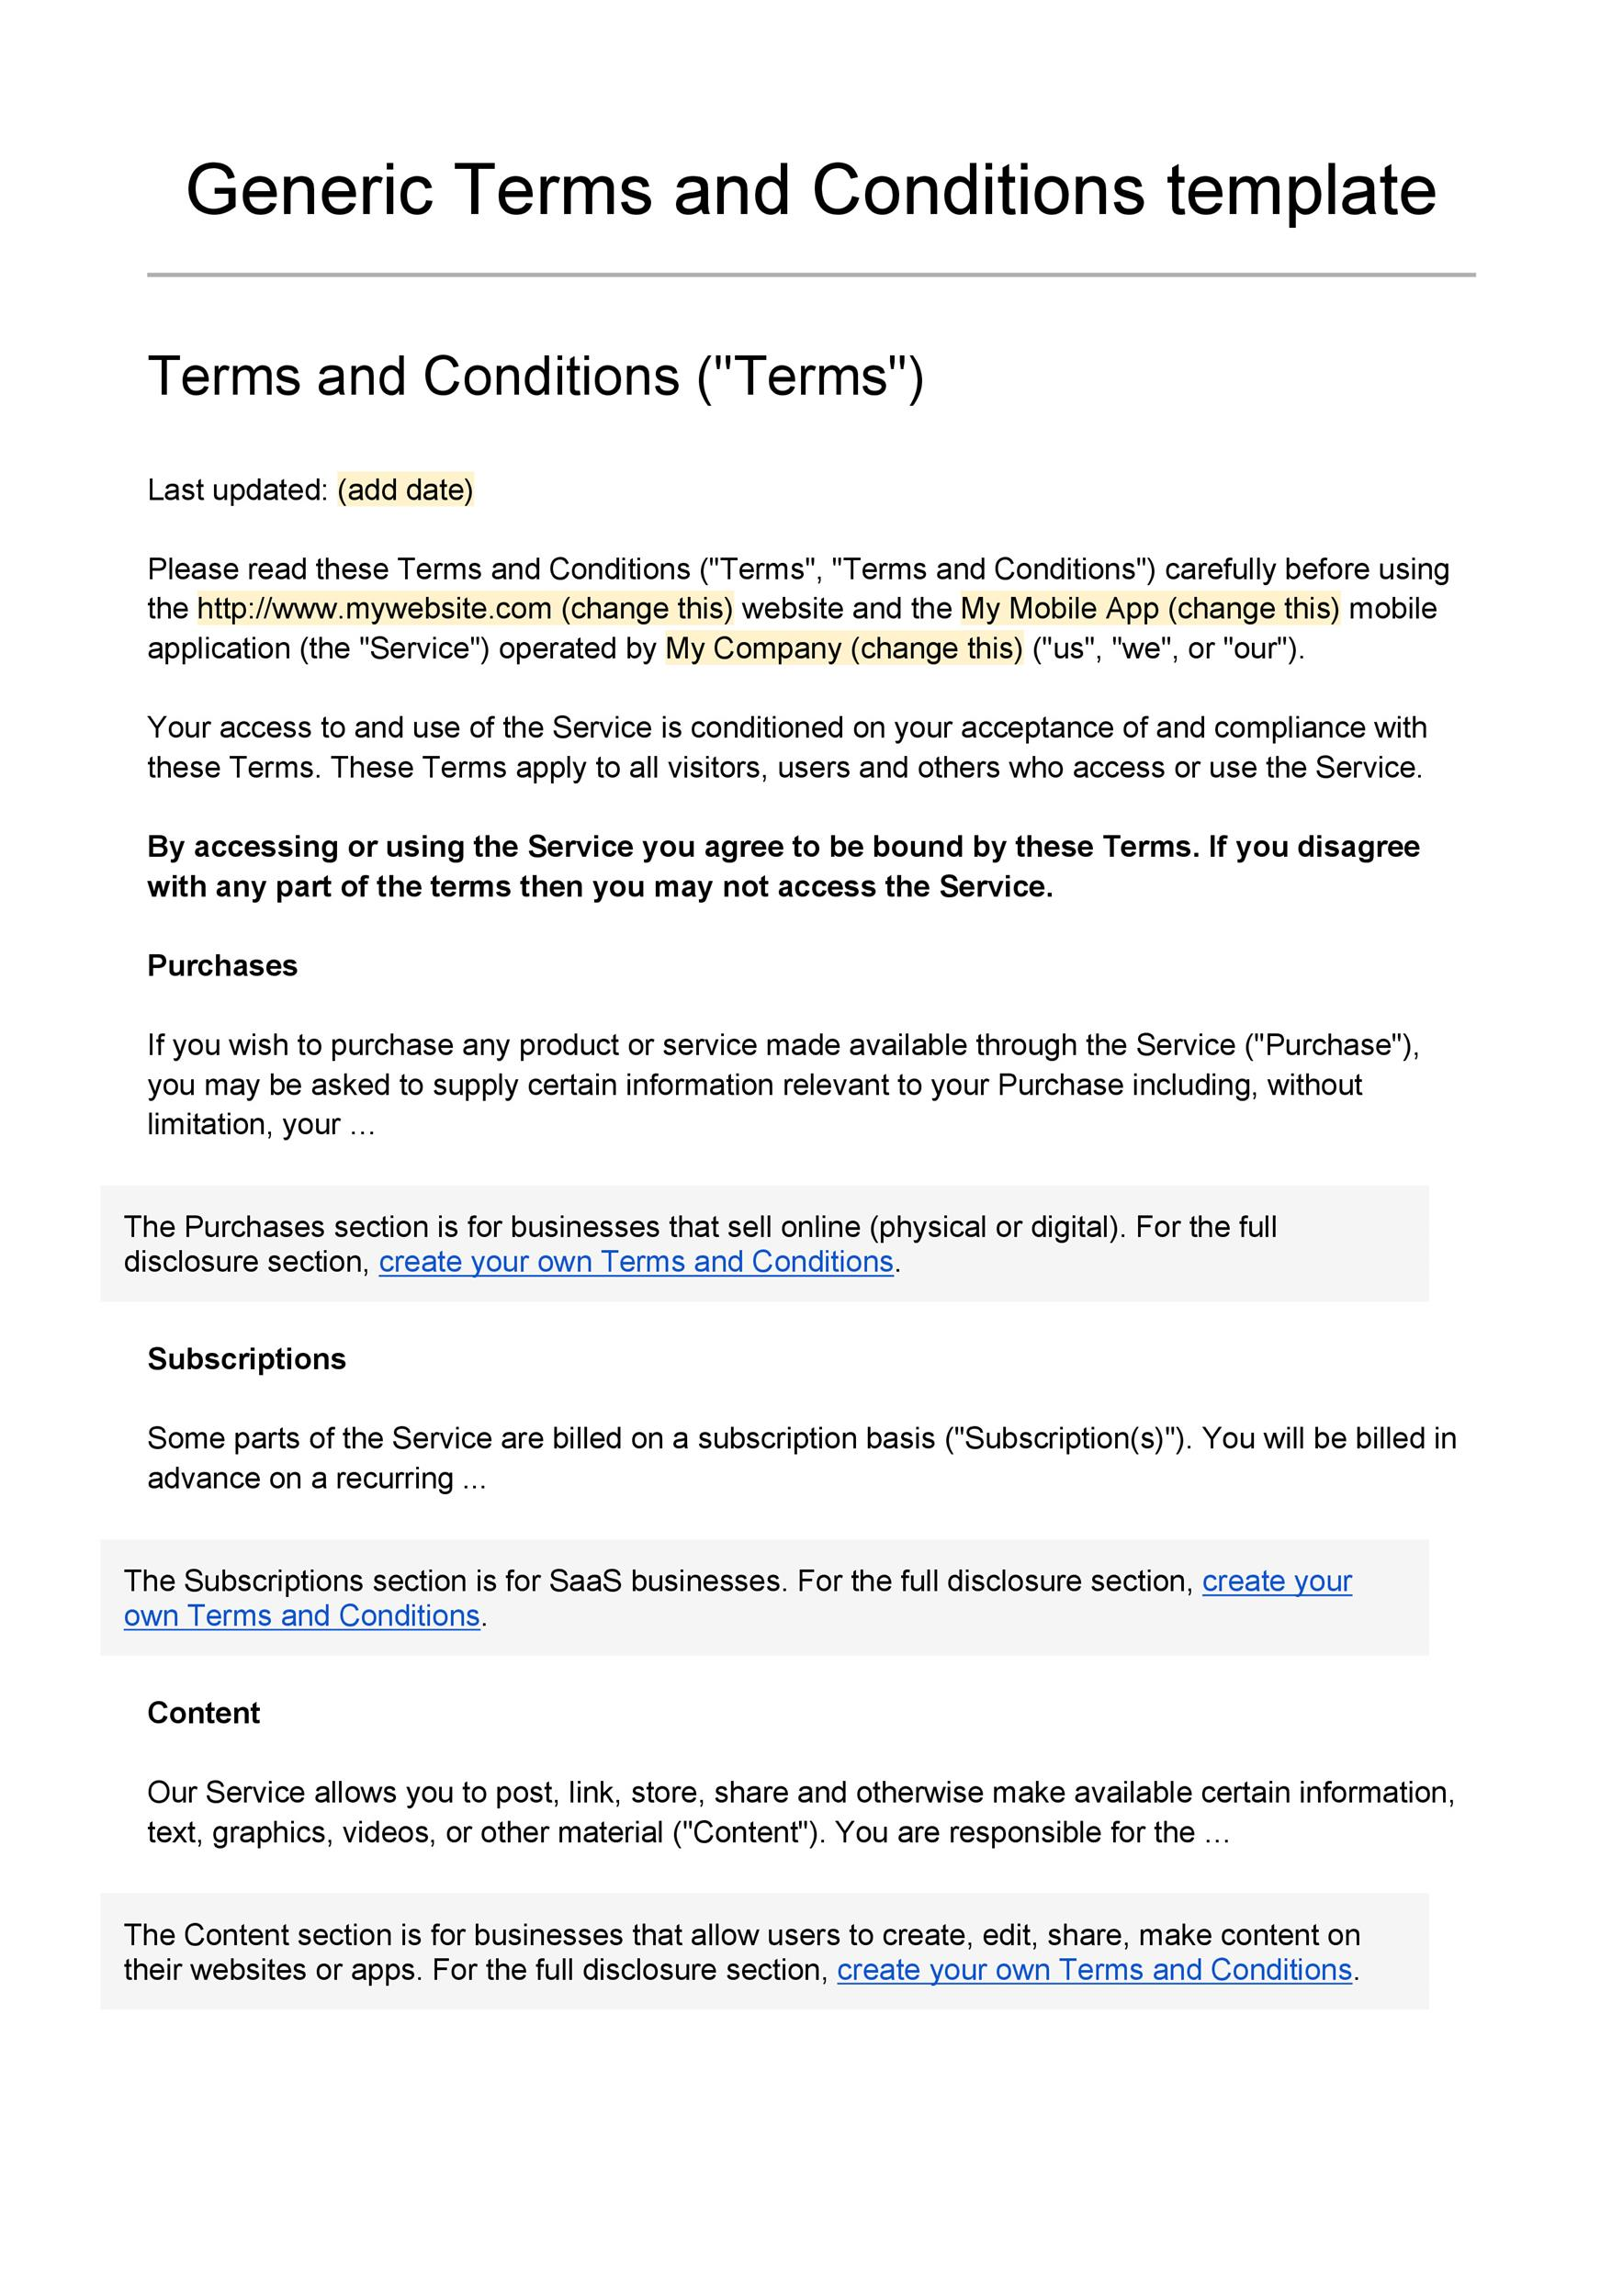 Free terms and conditions template 01